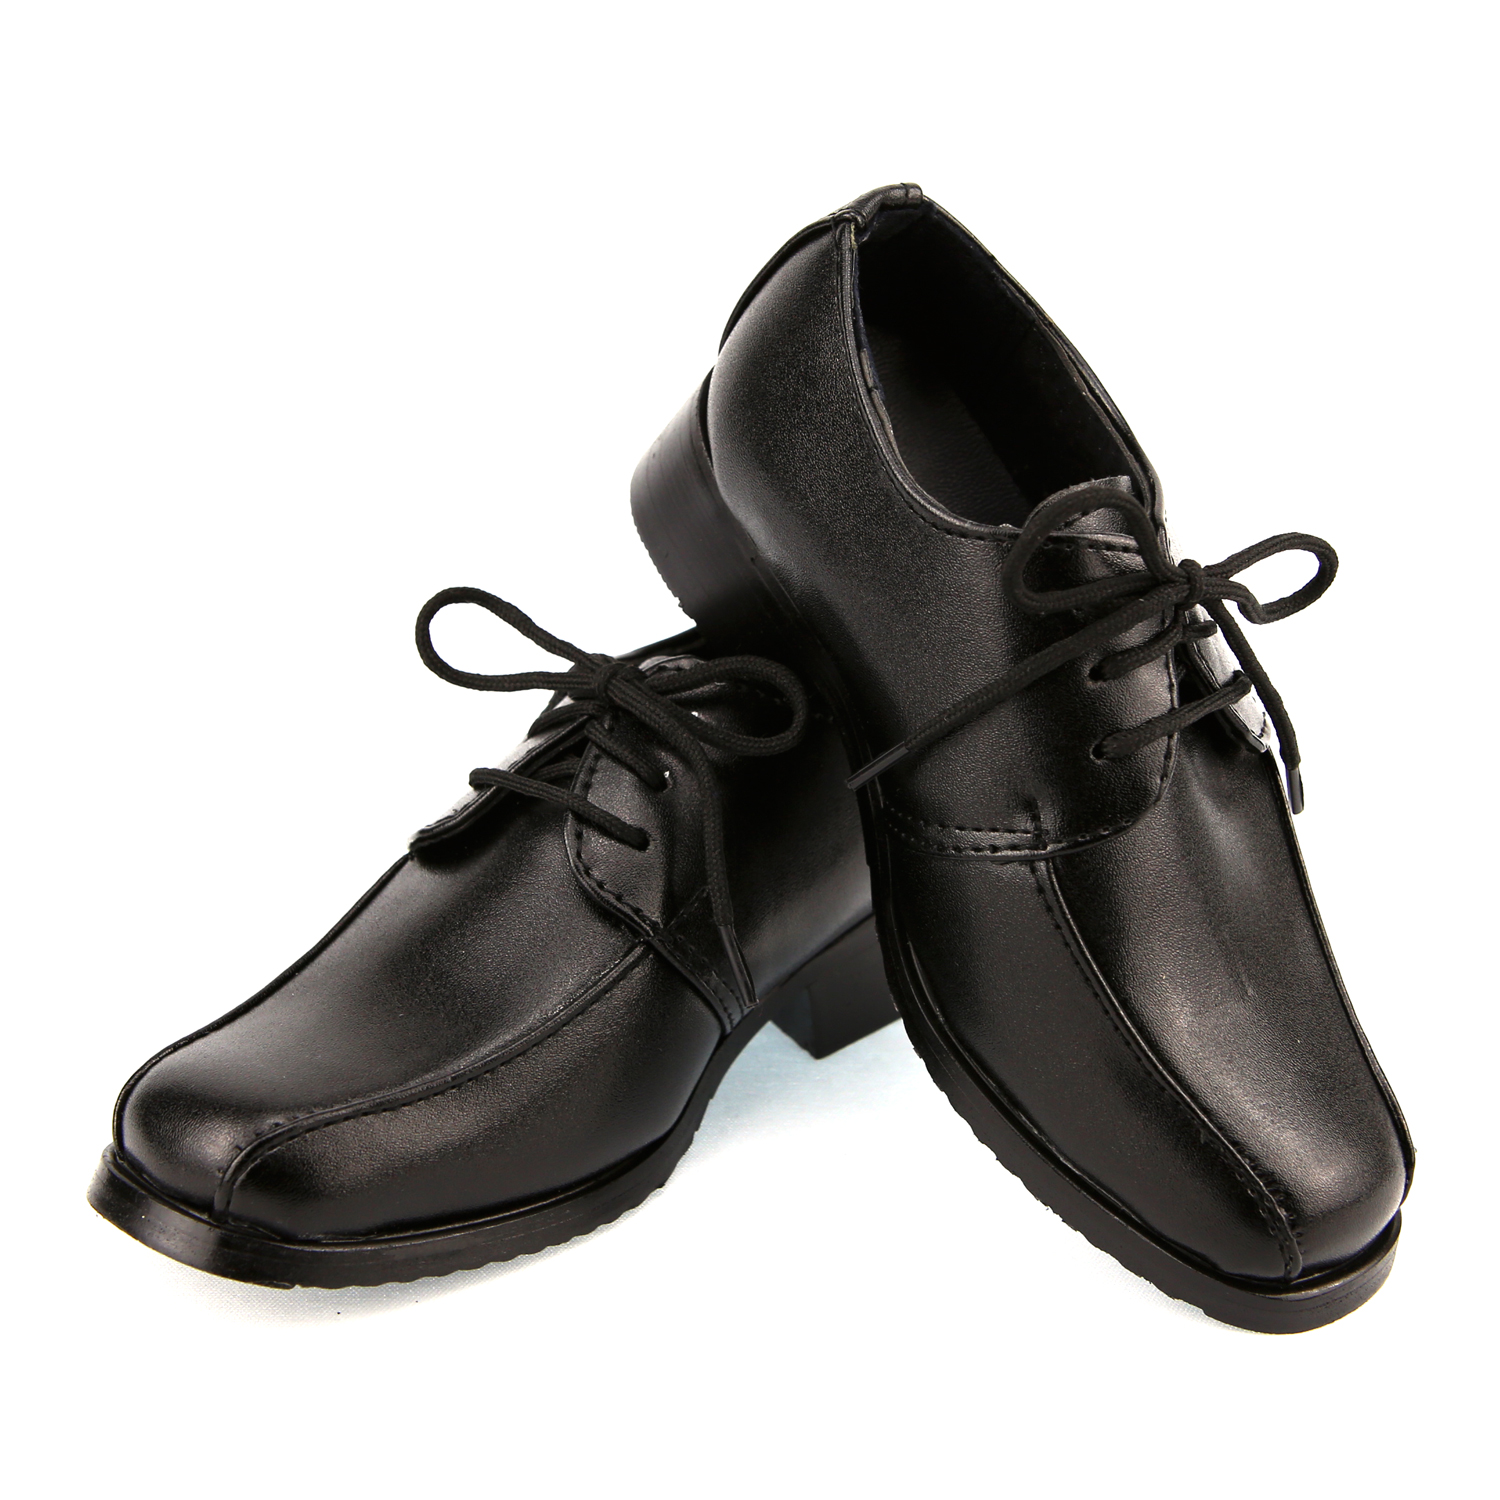 chaussure derby enfant gar on pour c r monie mariage c5167 noir chaussures gar on cadoshop. Black Bedroom Furniture Sets. Home Design Ideas